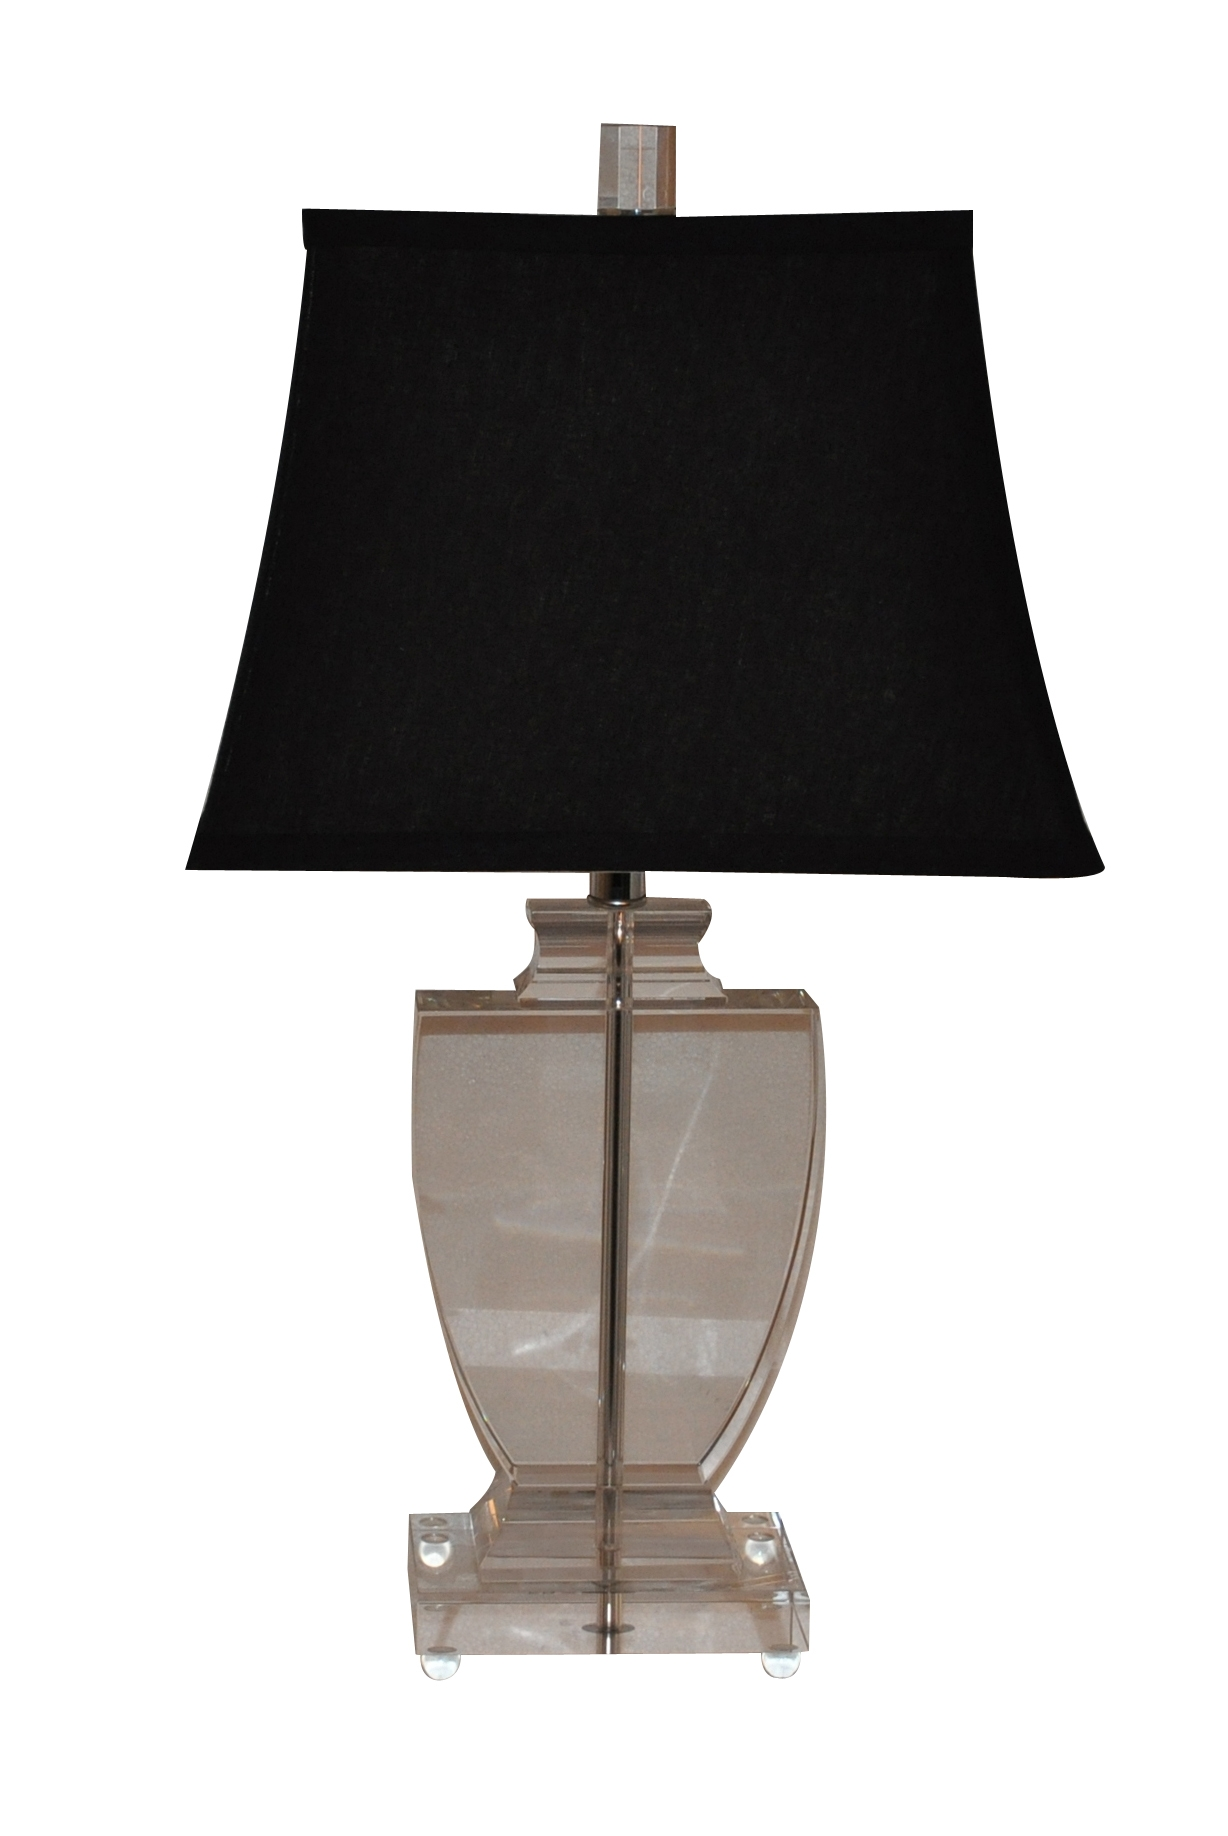 Powerlight International Crystal Table Amp Floor Lamp